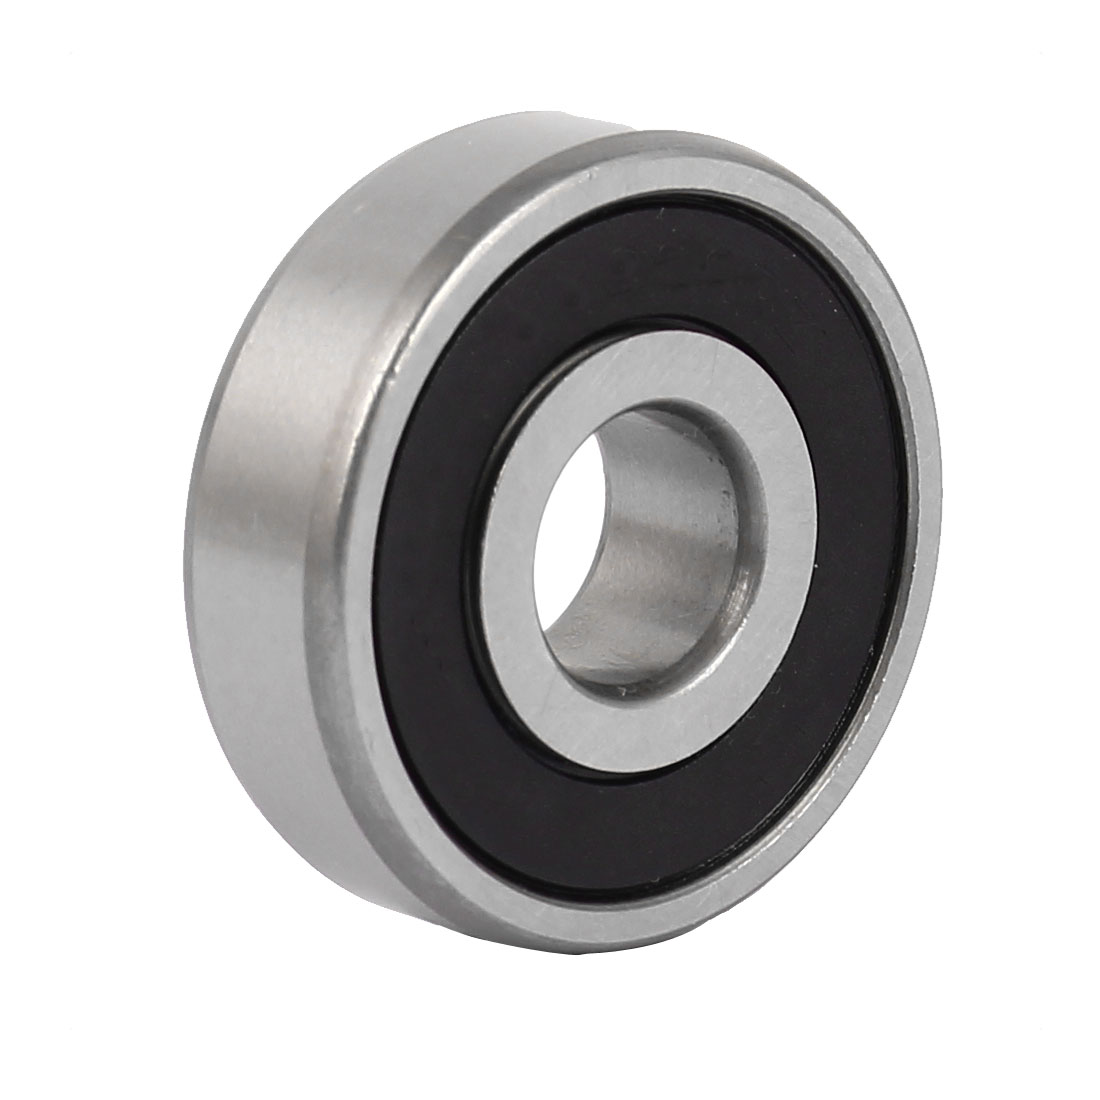 RZ6202 35mm x 15mm x 11mm Shielded Deep Groove Radial Ball Bearing